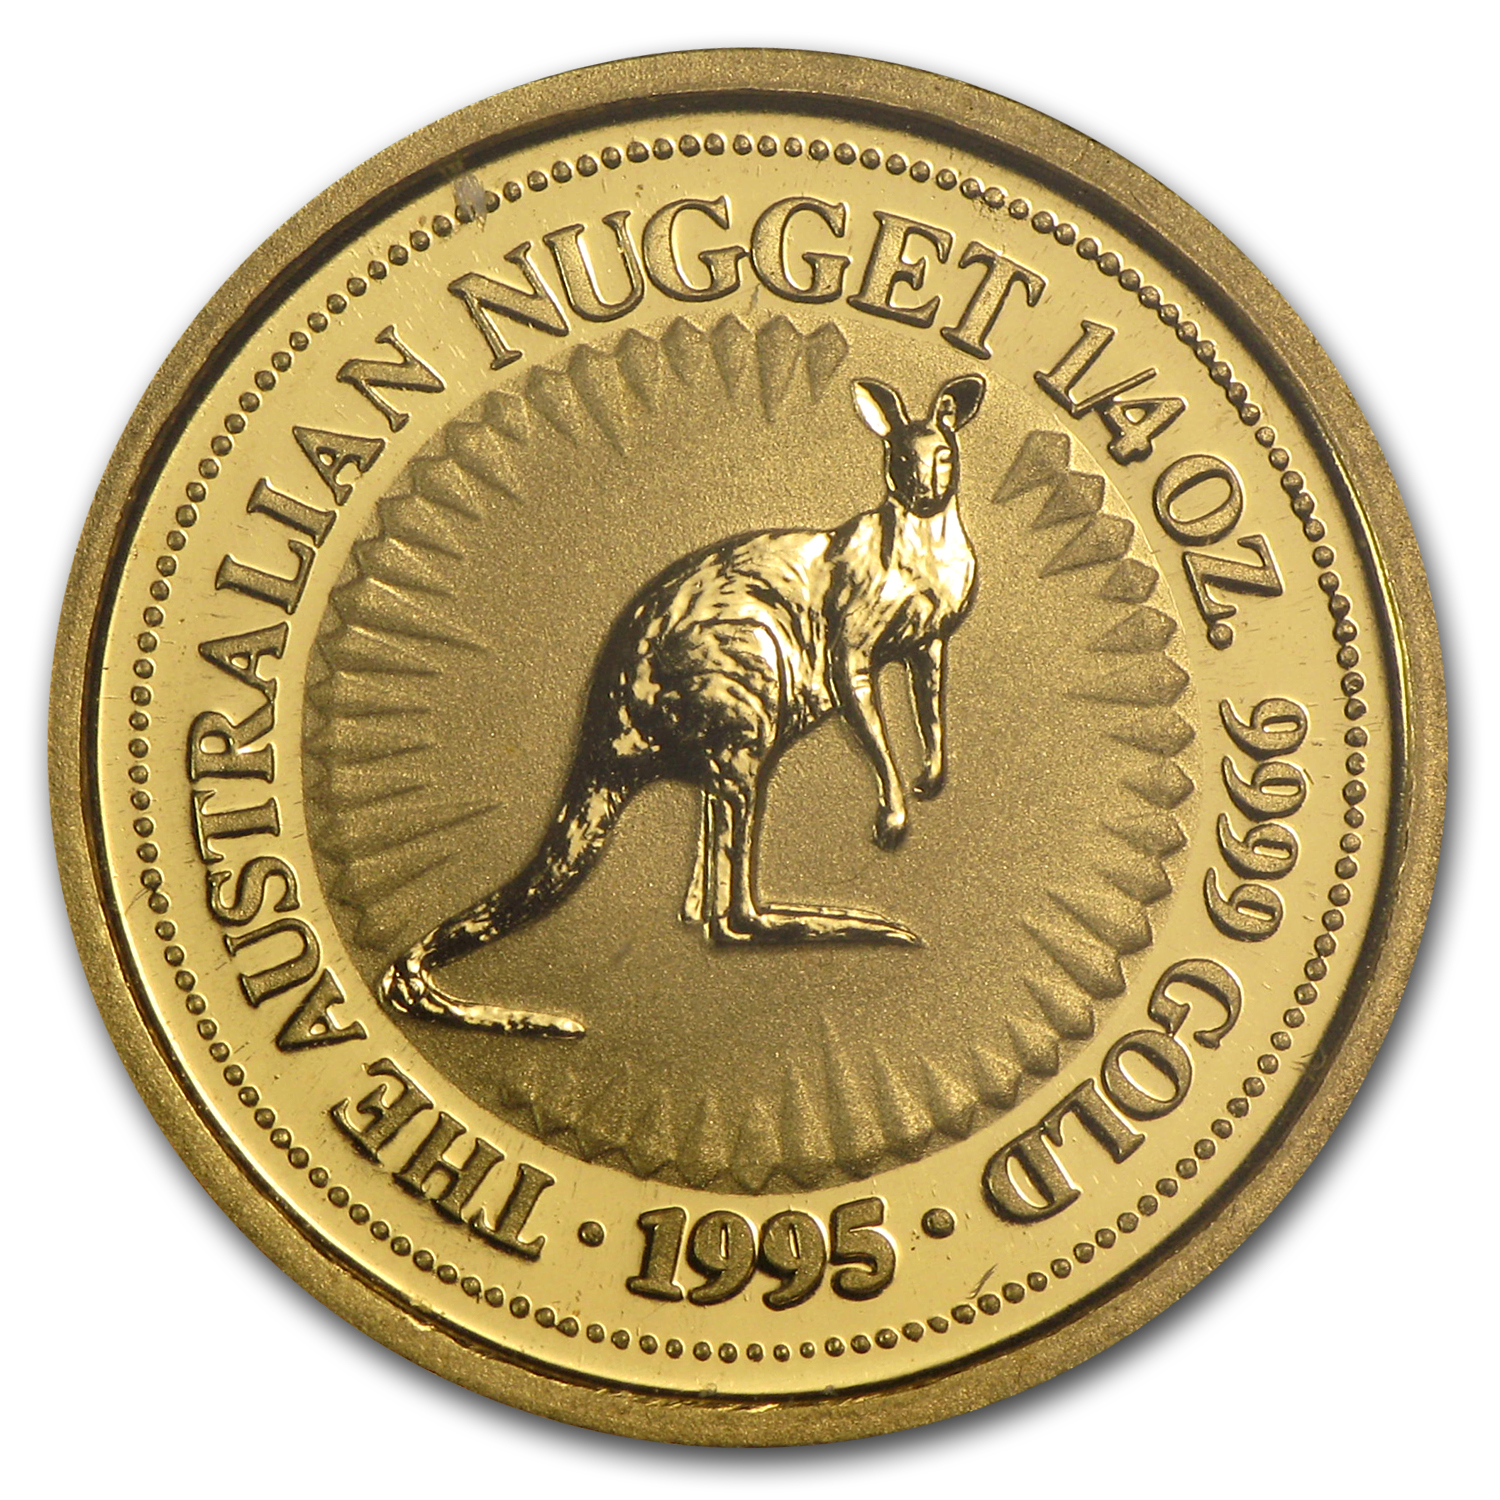 1995 1/4 oz Australian Gold Nugget